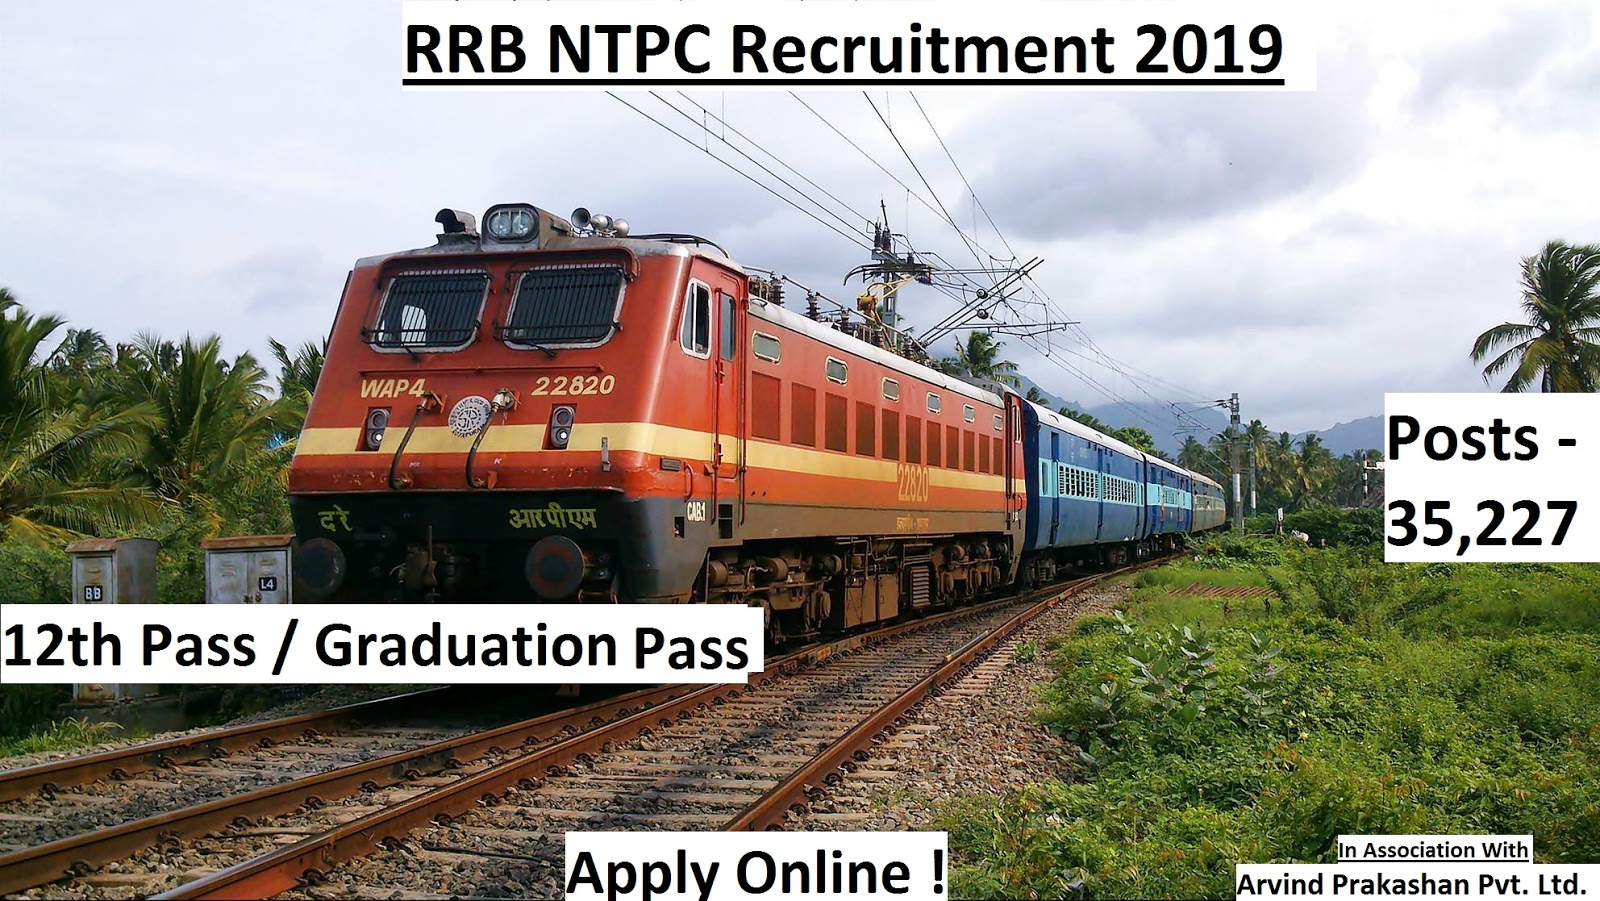 RRB NTPC Recruitment 2019 | 35227 Posts - 12th / Graduation Pass | Apply Online